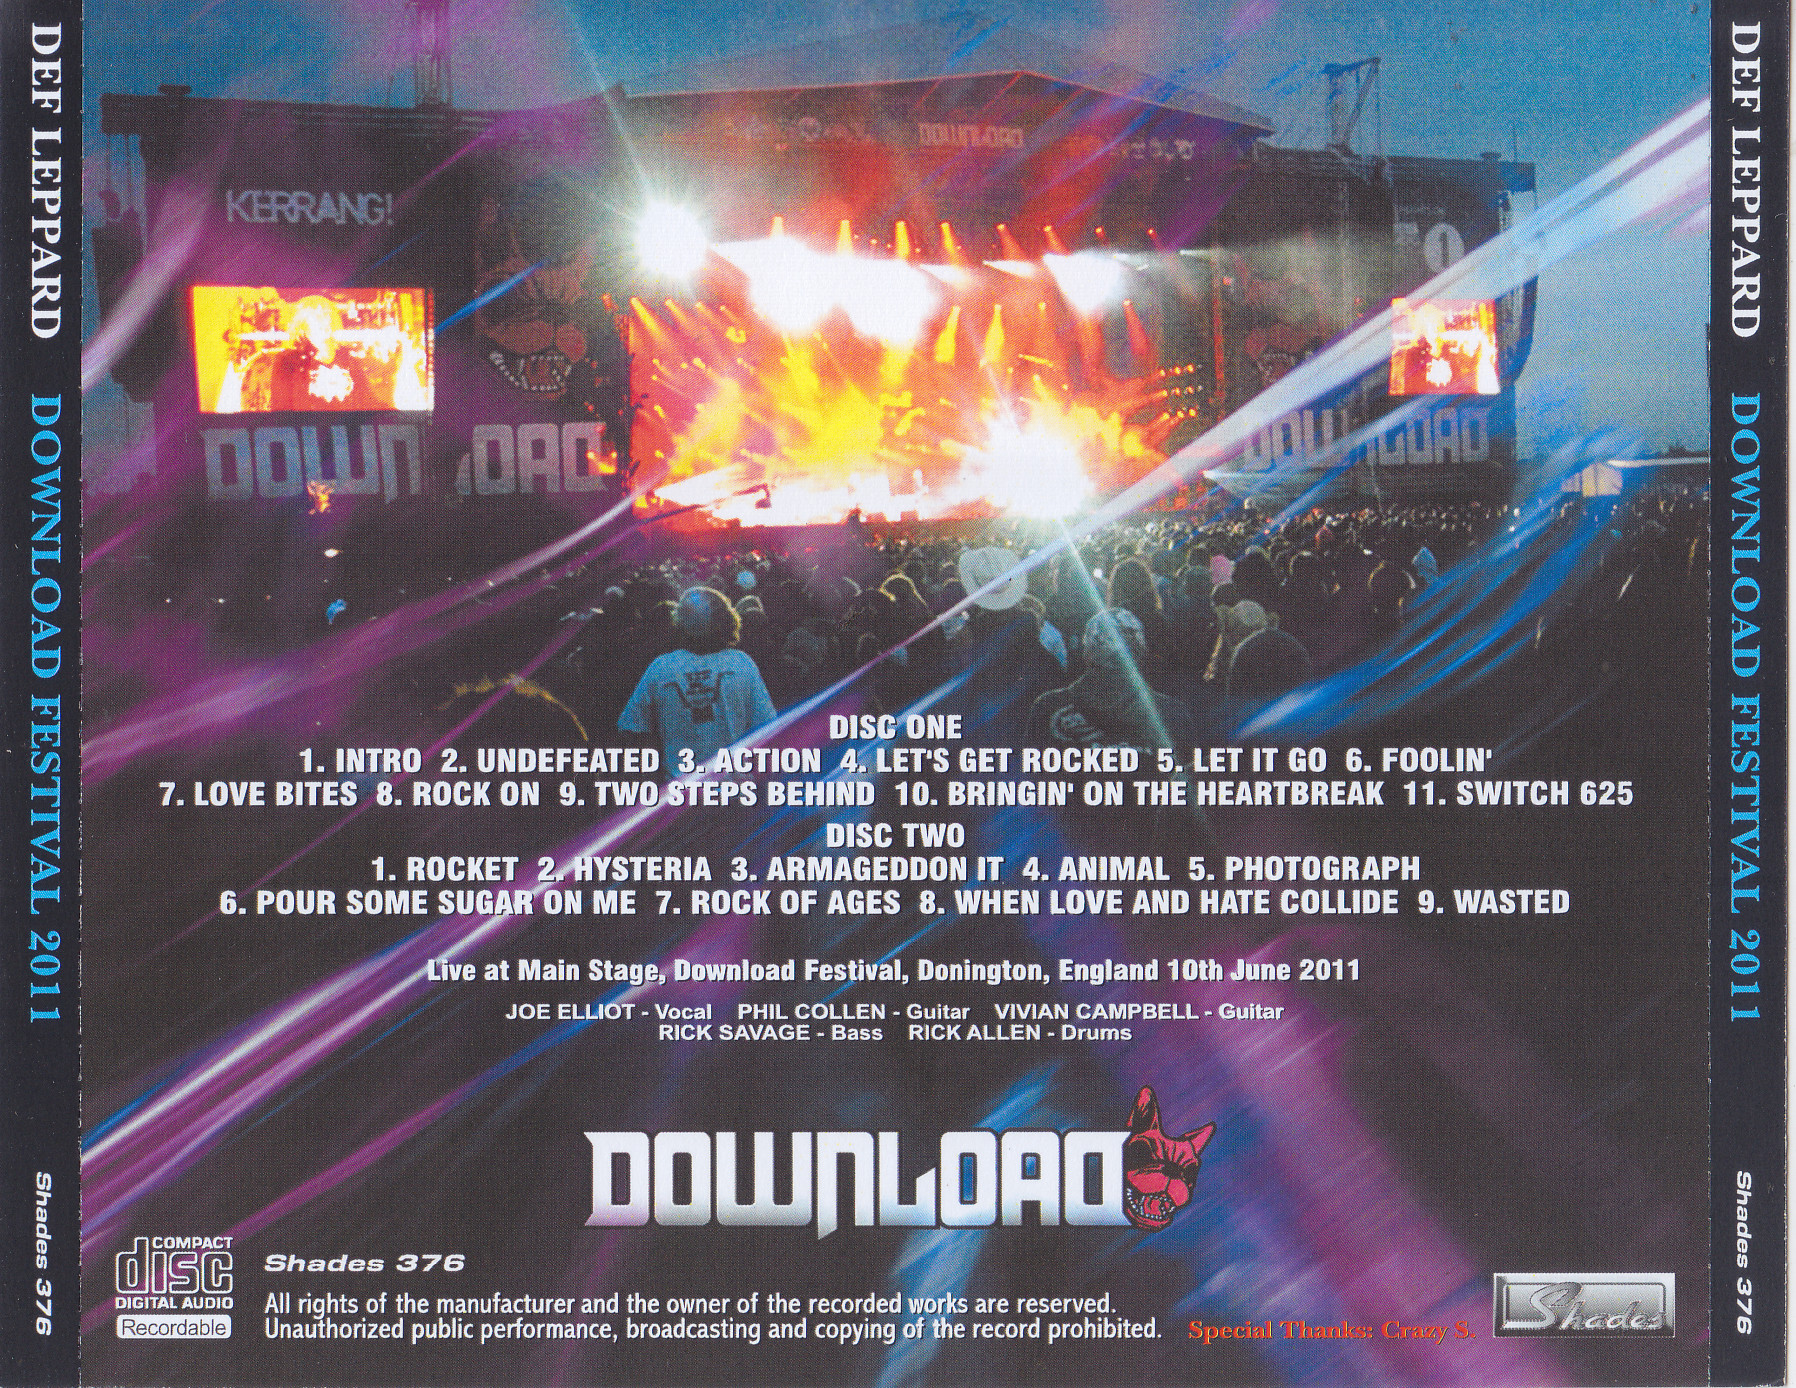 Def Leppard - Download Festival 2011(2Pro-CDR)Shades 376